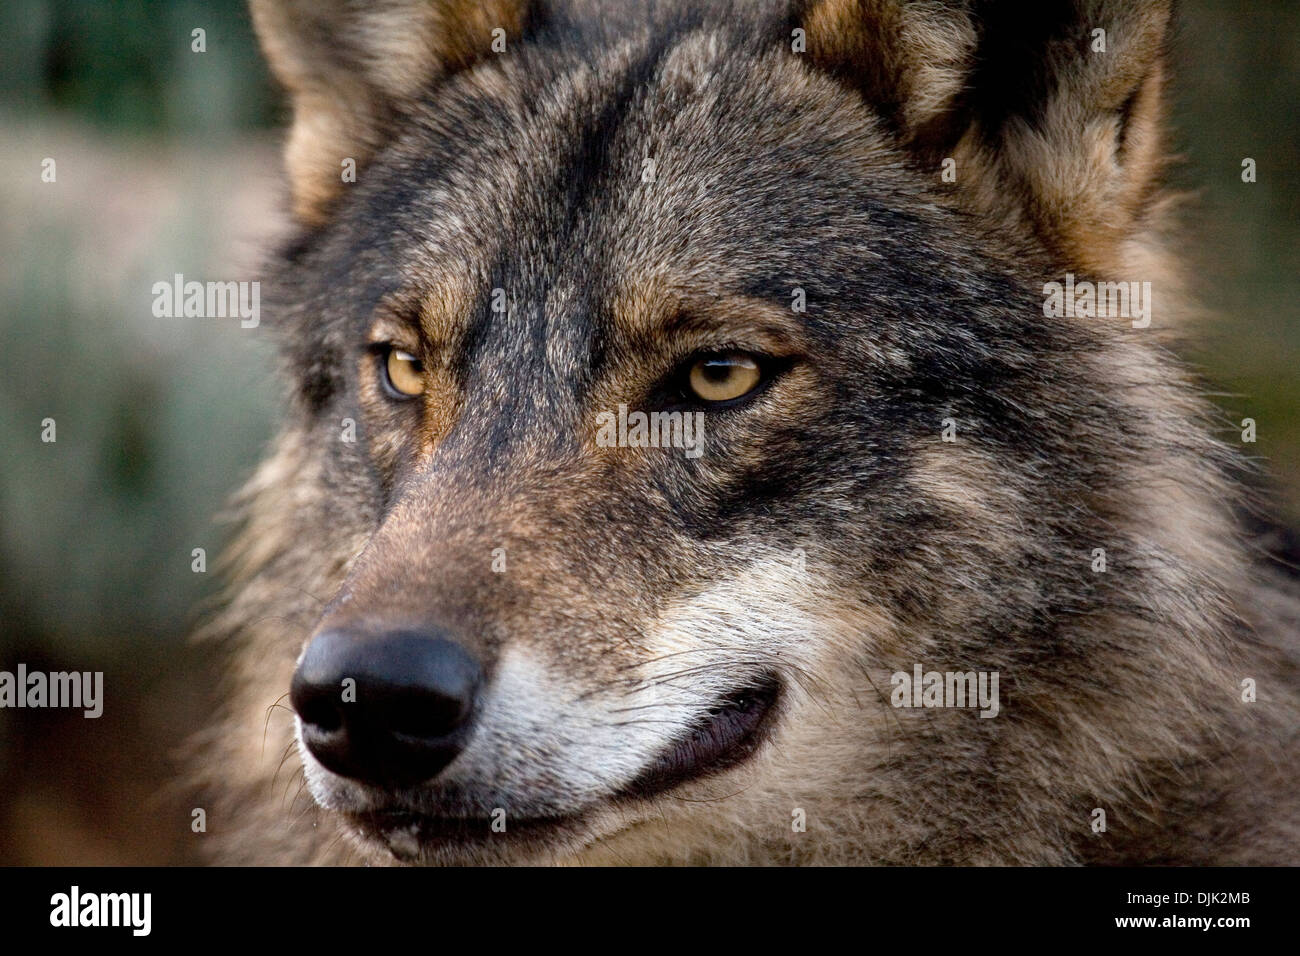 Iberian wolf look. Wolf park, Antequera, Malaga, Andalusia, Spain - Stock Image